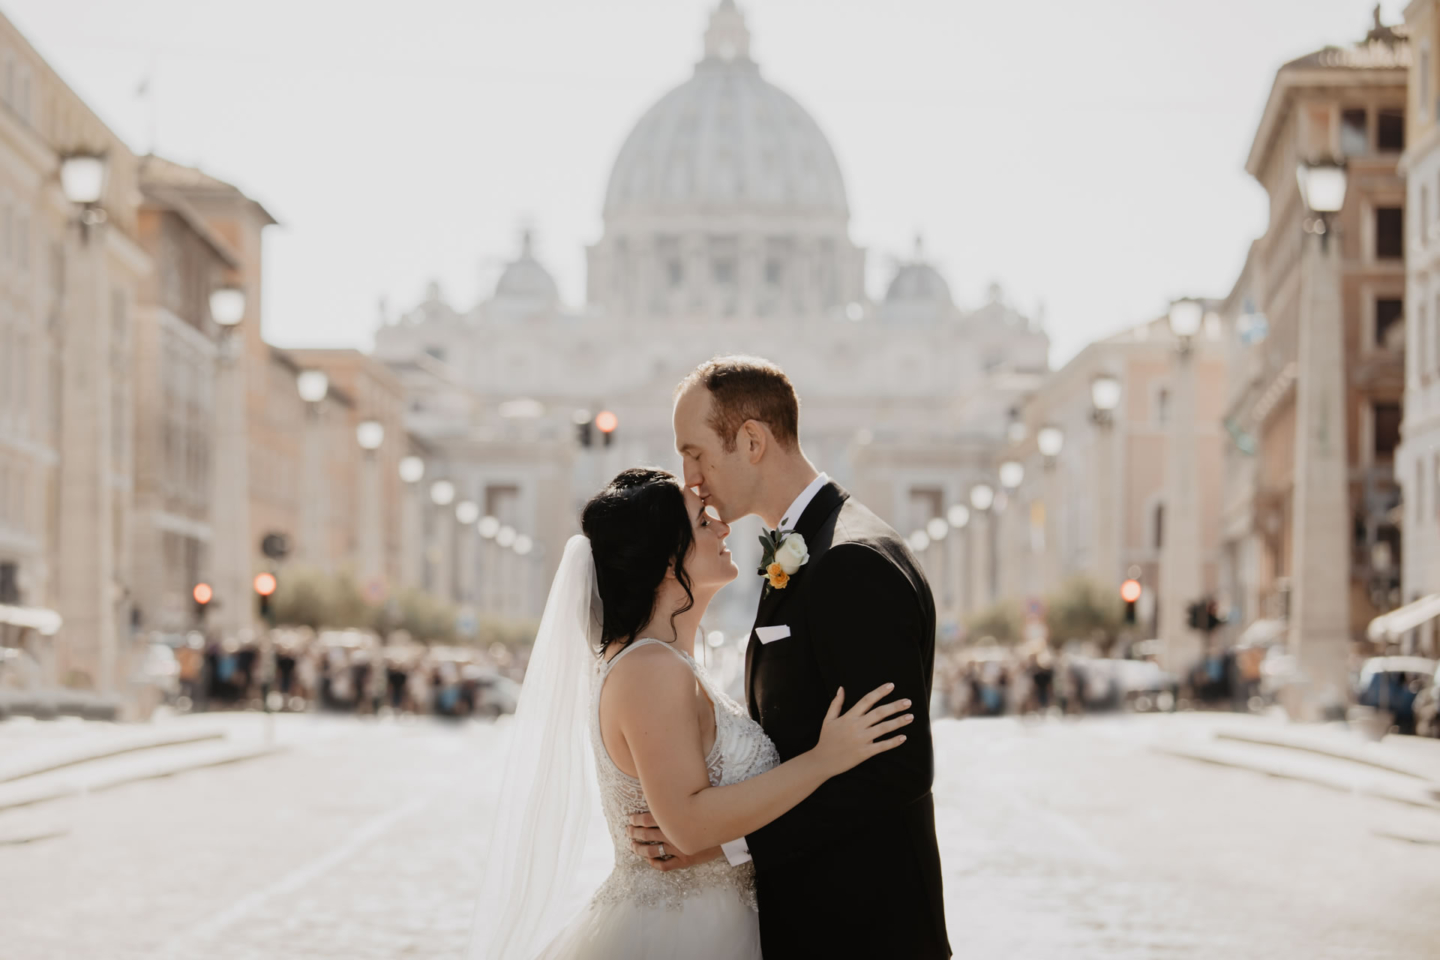 A breath-taking wedding in Rome, the eternal city :: Luxury wedding photography - 24